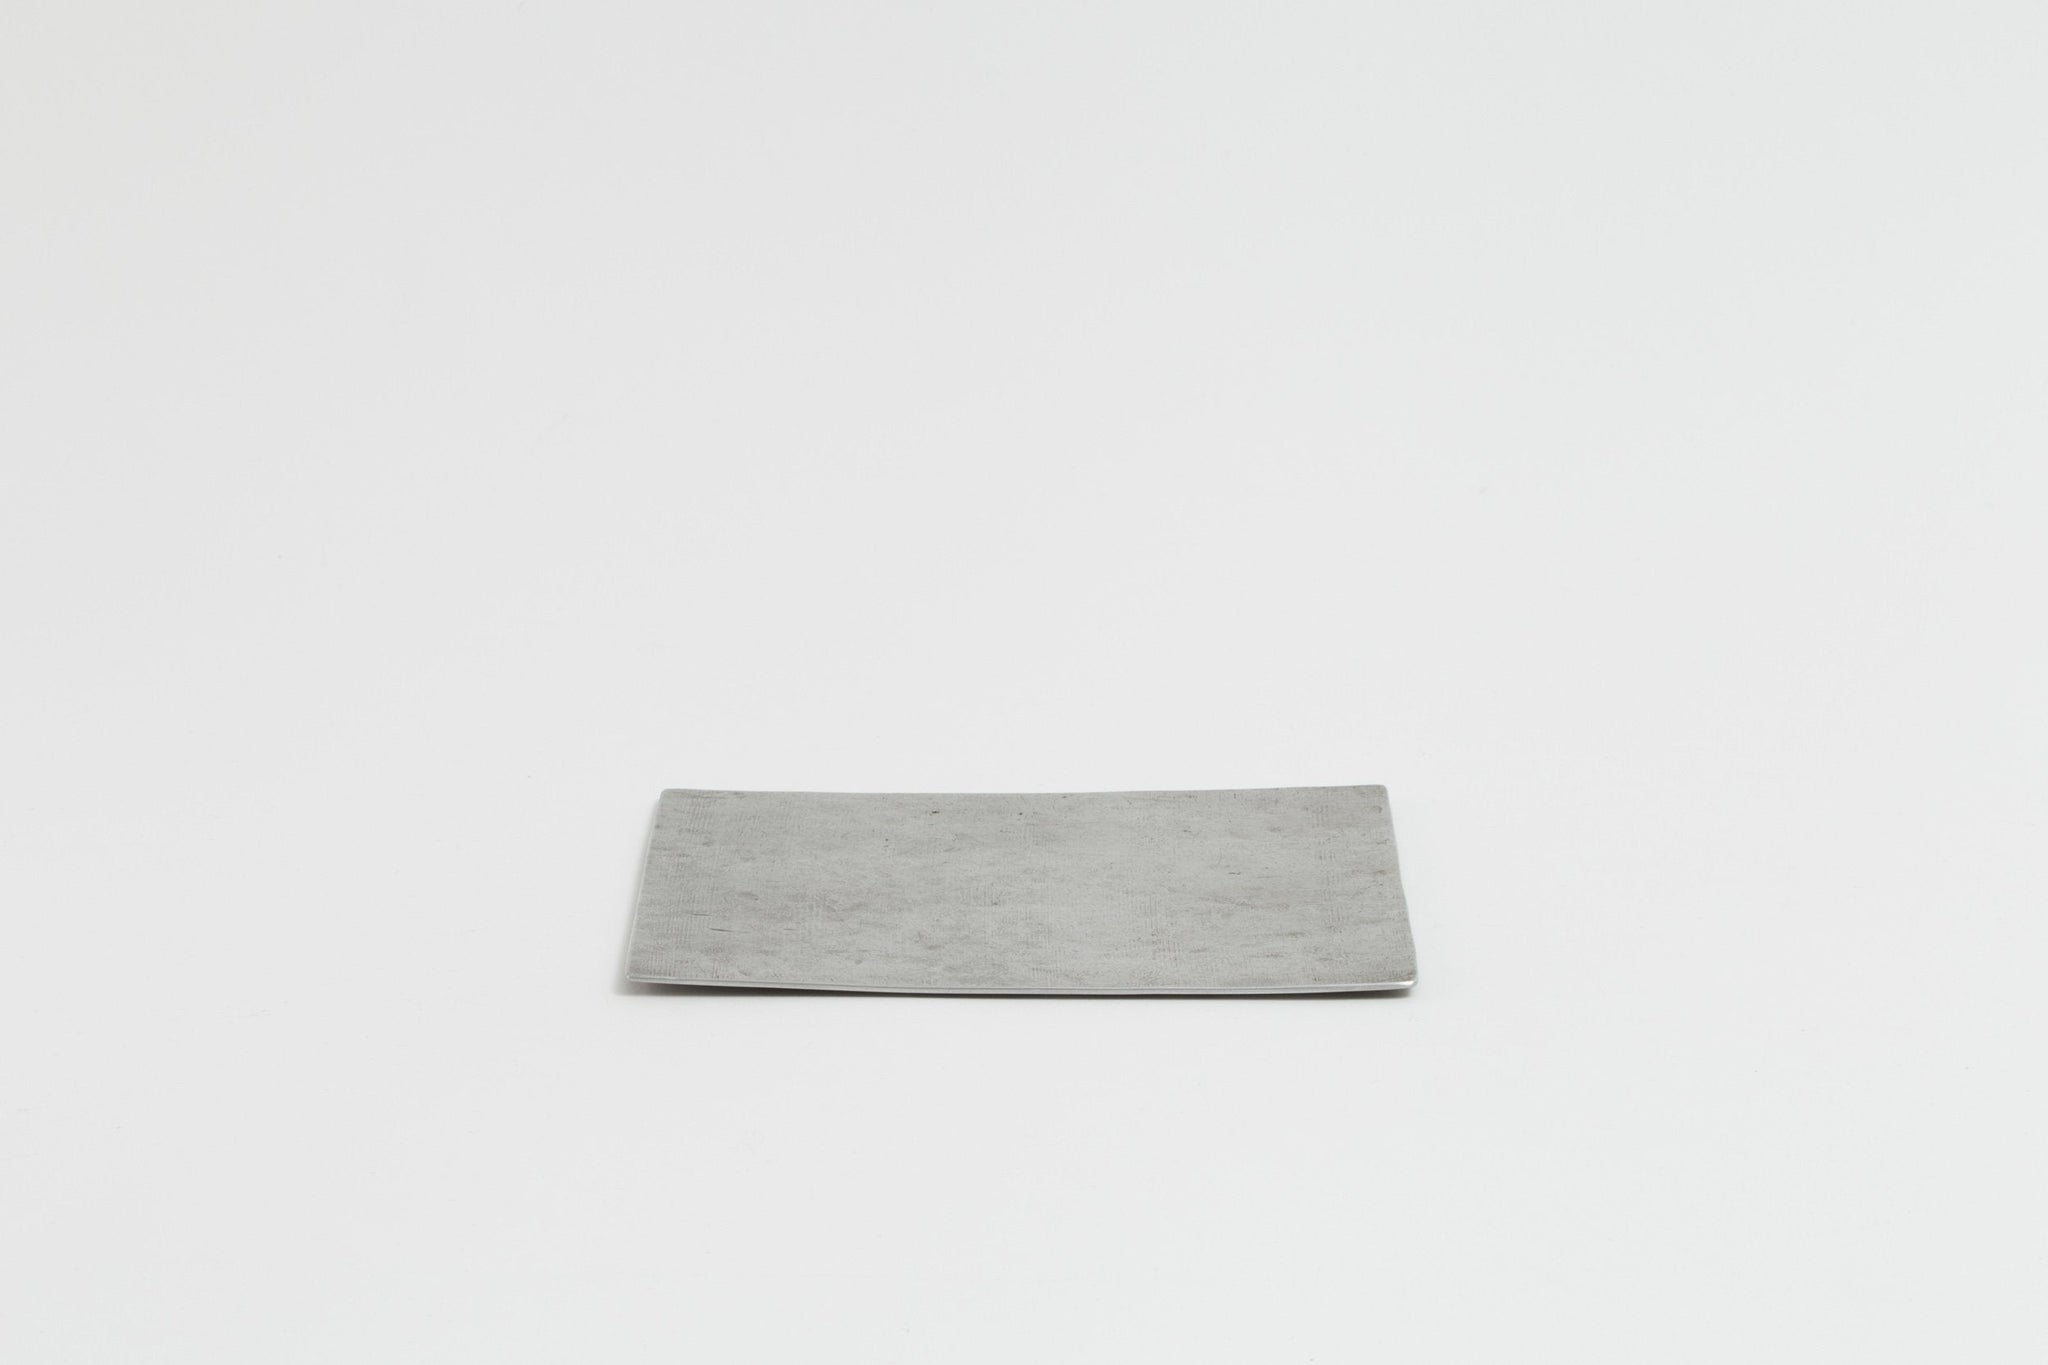 Tsuyoshi Yazawa - Rectangle Plate